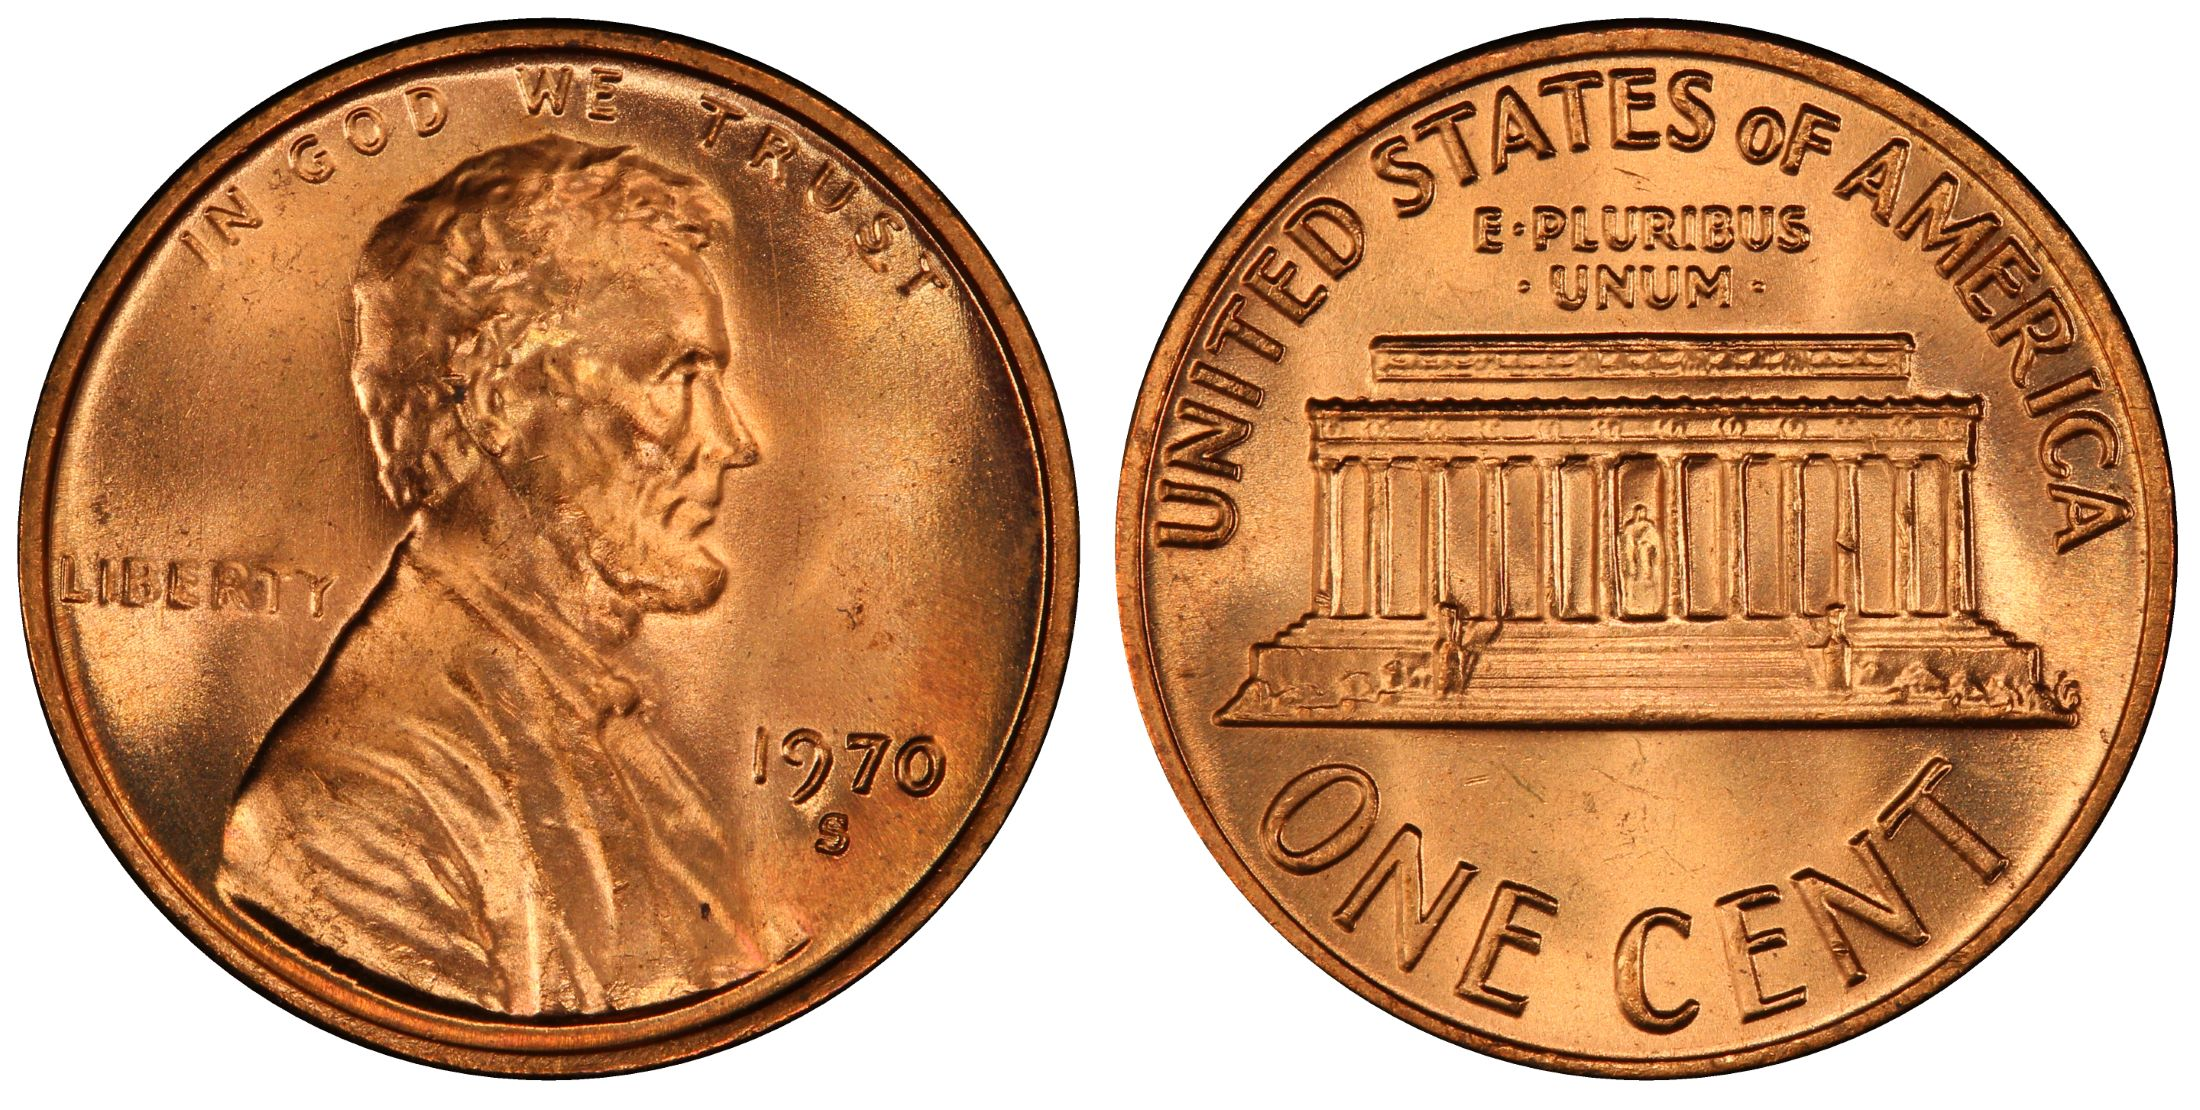 1970-S 1C Small Date, RD (Regular Strike) - PCGS CoinFacts